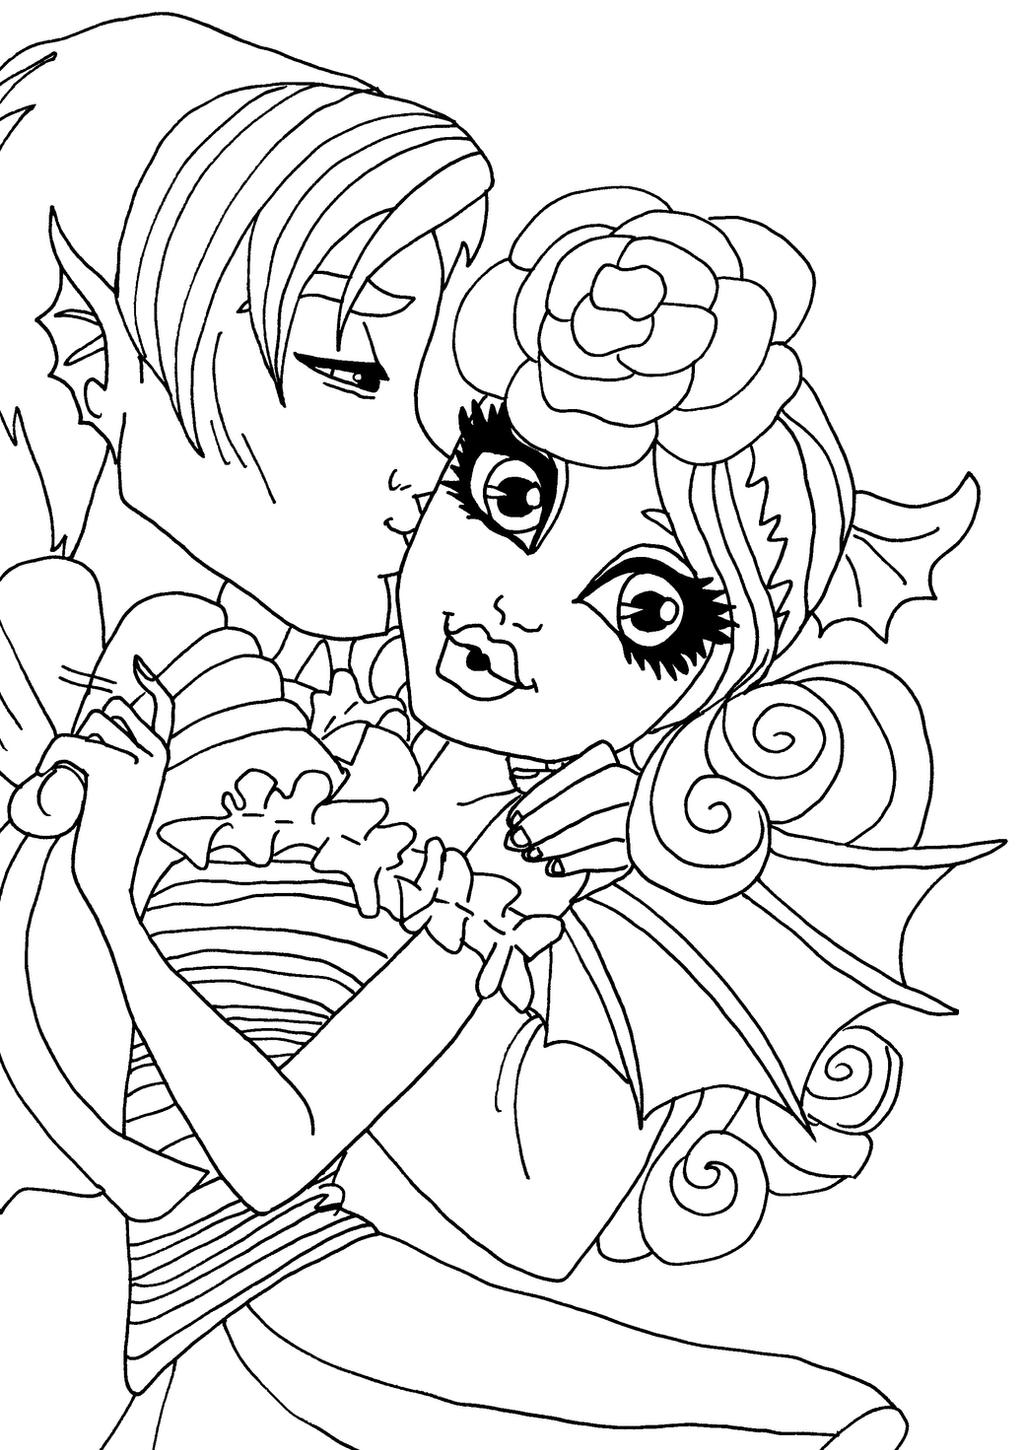 Elfkena 8 0 Rochelle And Garrott By Monster High Color Page